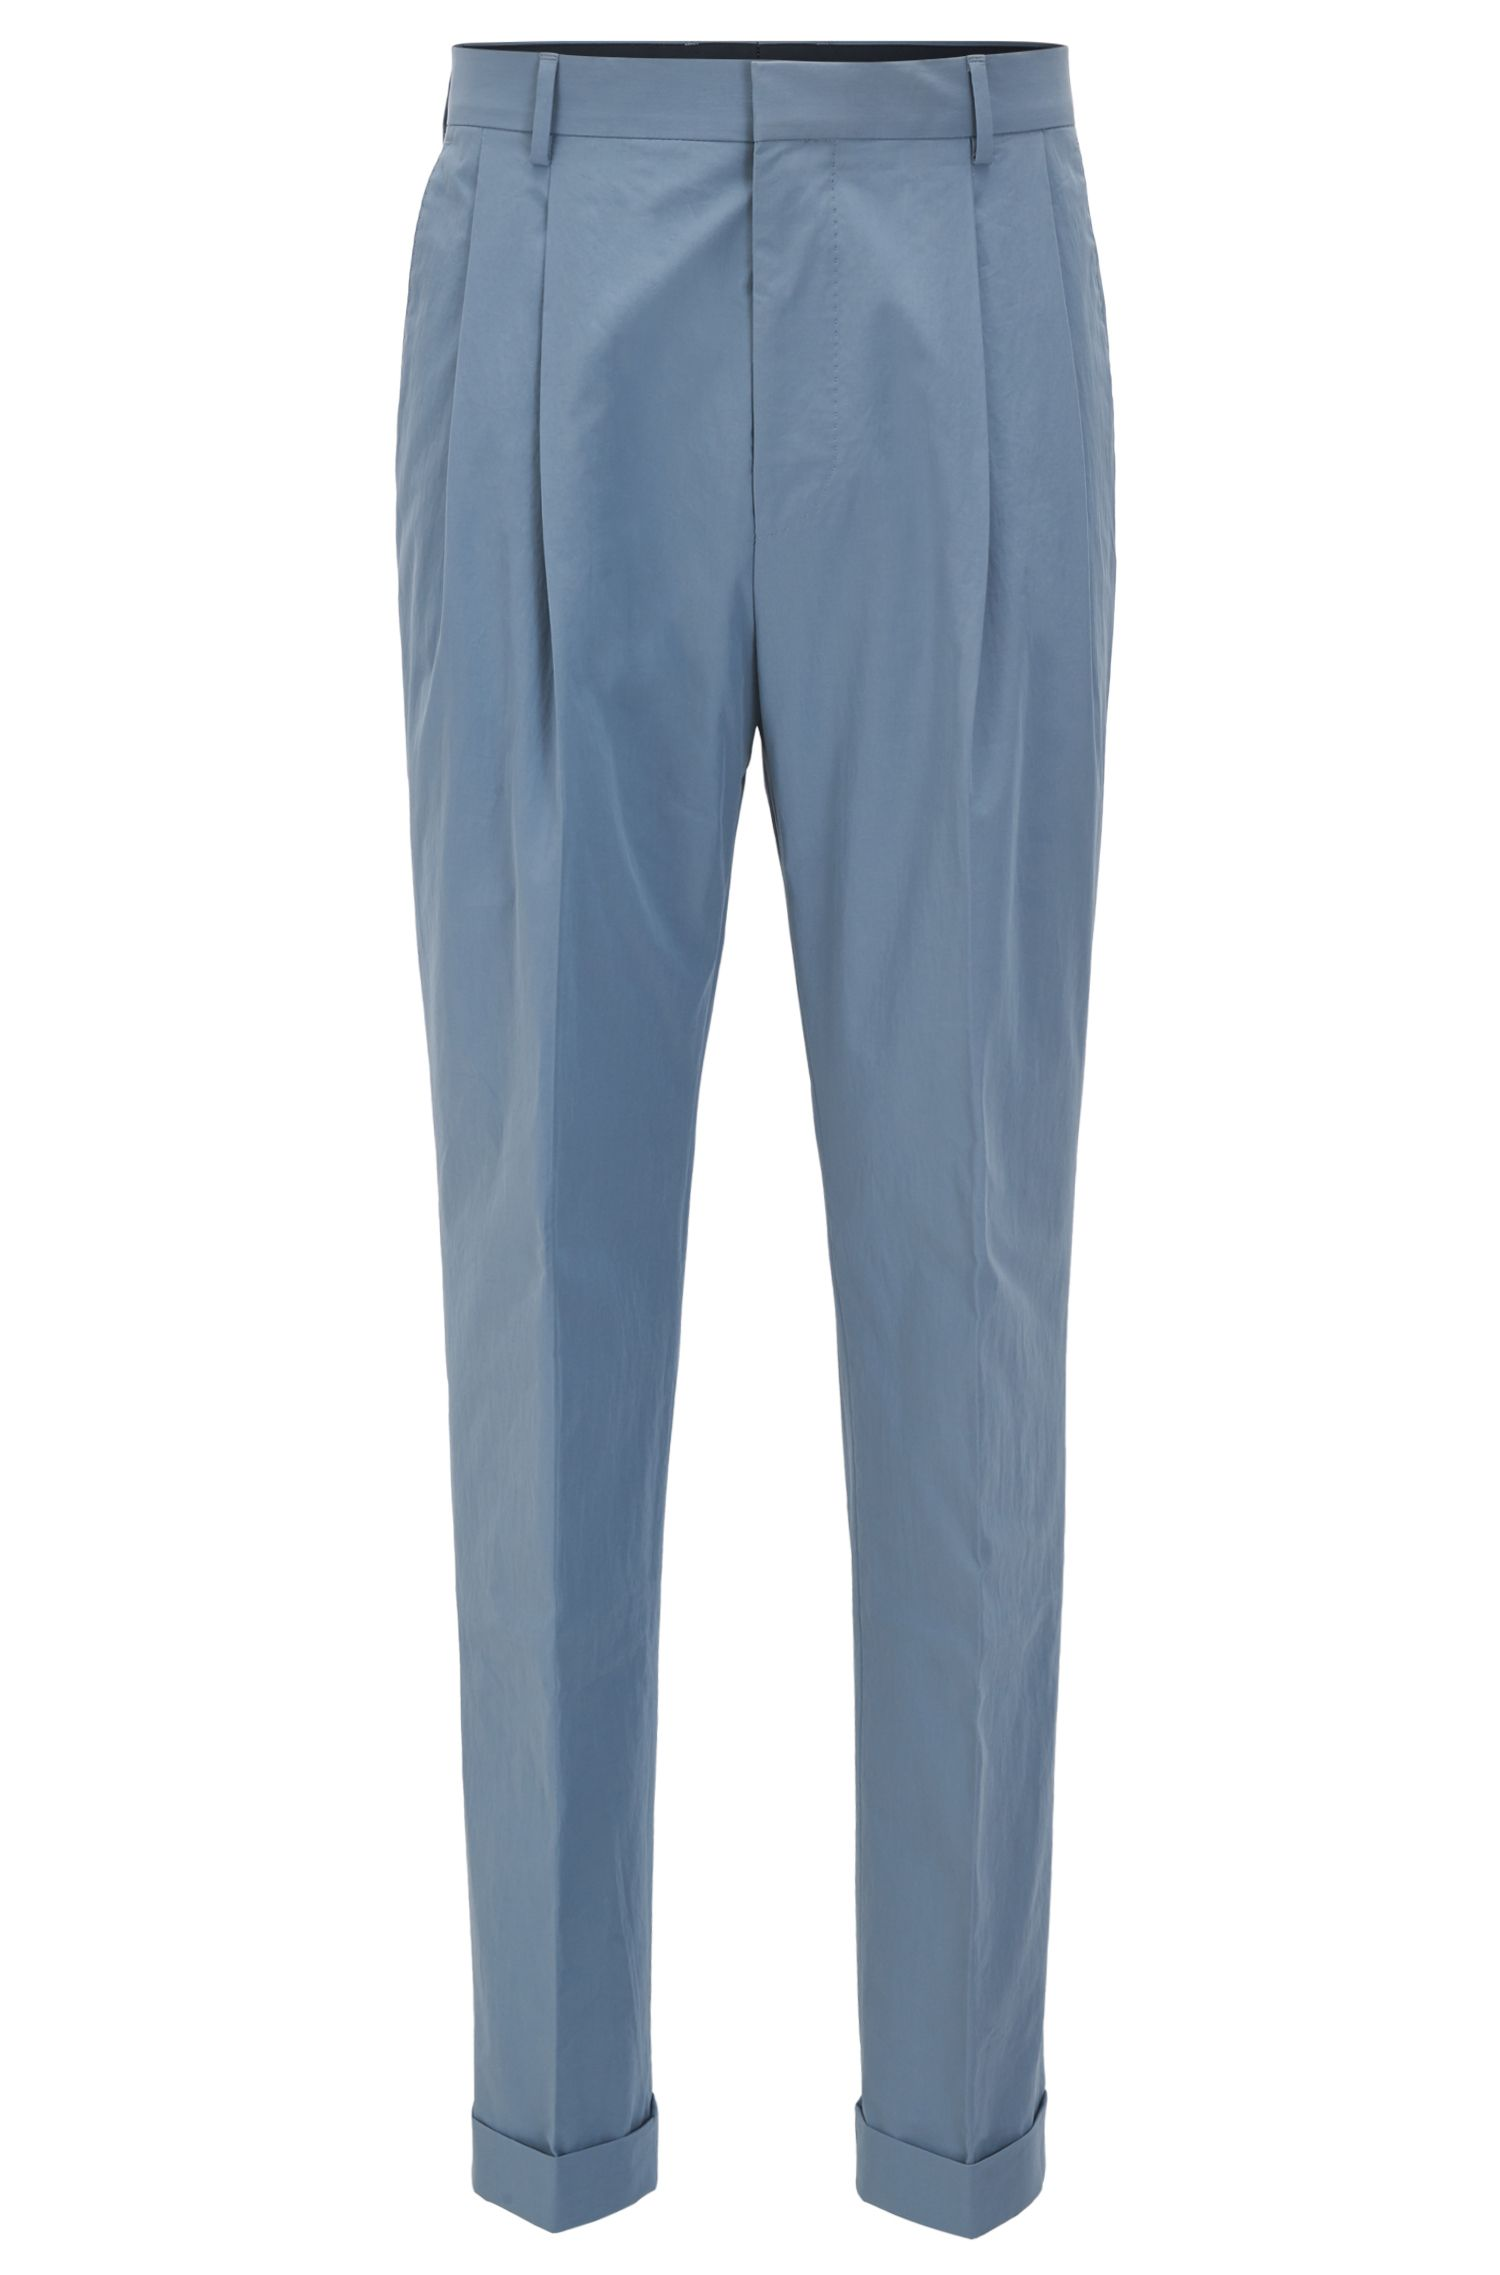 Pleated Cotton Dress Pant, Relaxed Fit | Orville